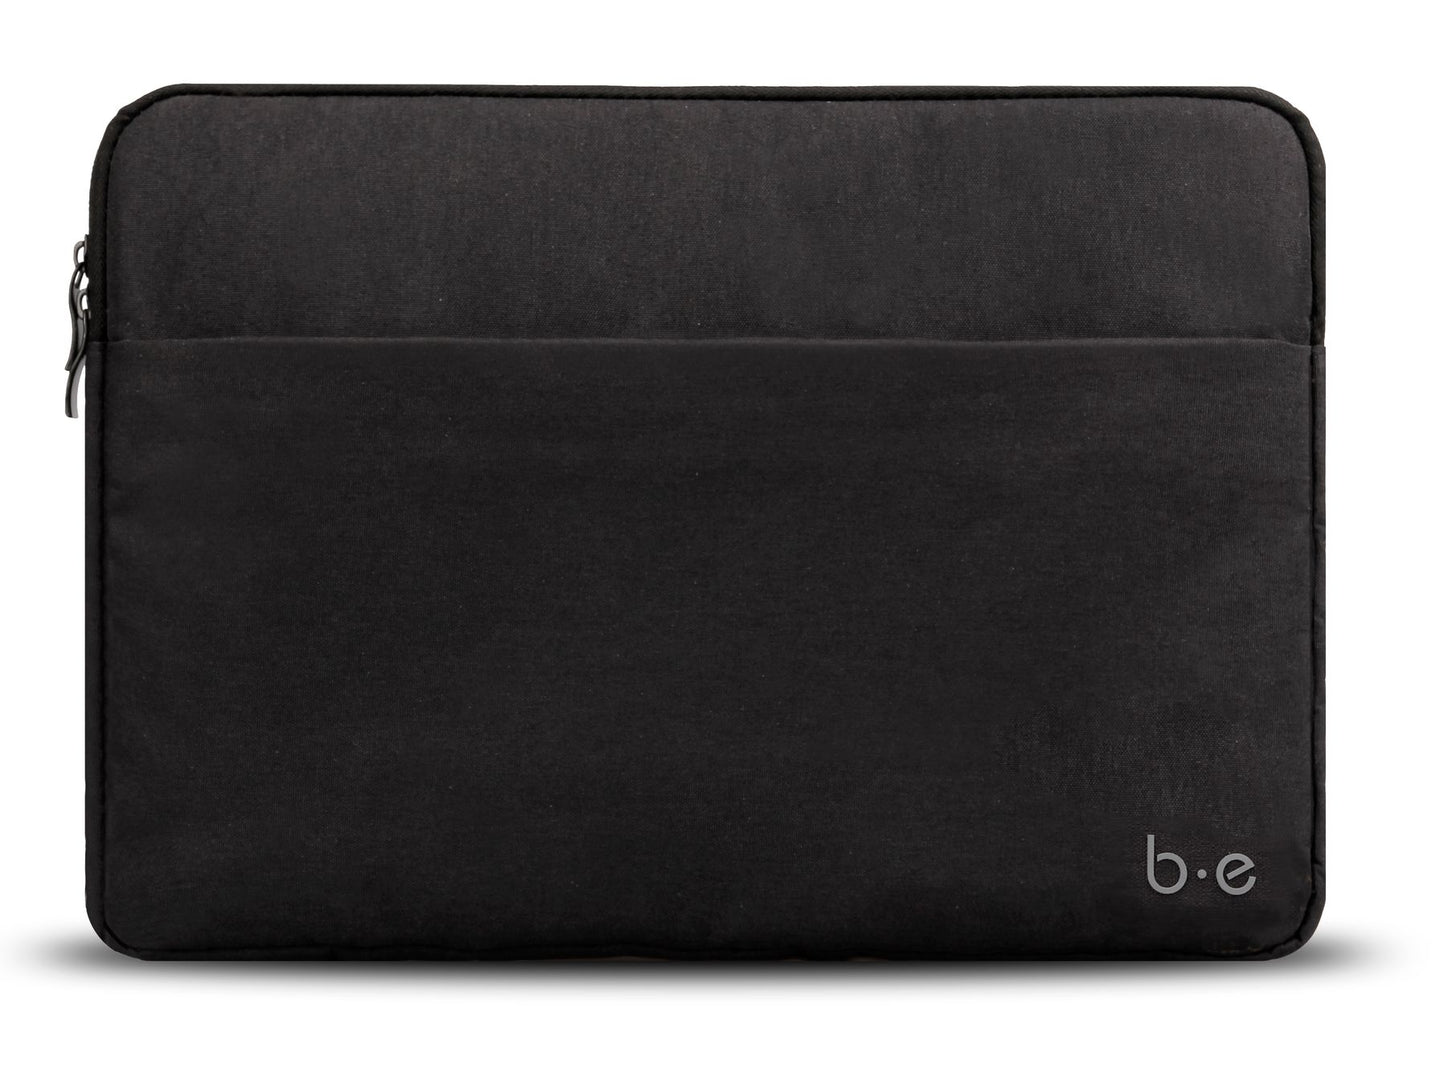 Blu Element Canvas Sleeve Black for MacBook and Laptop 15